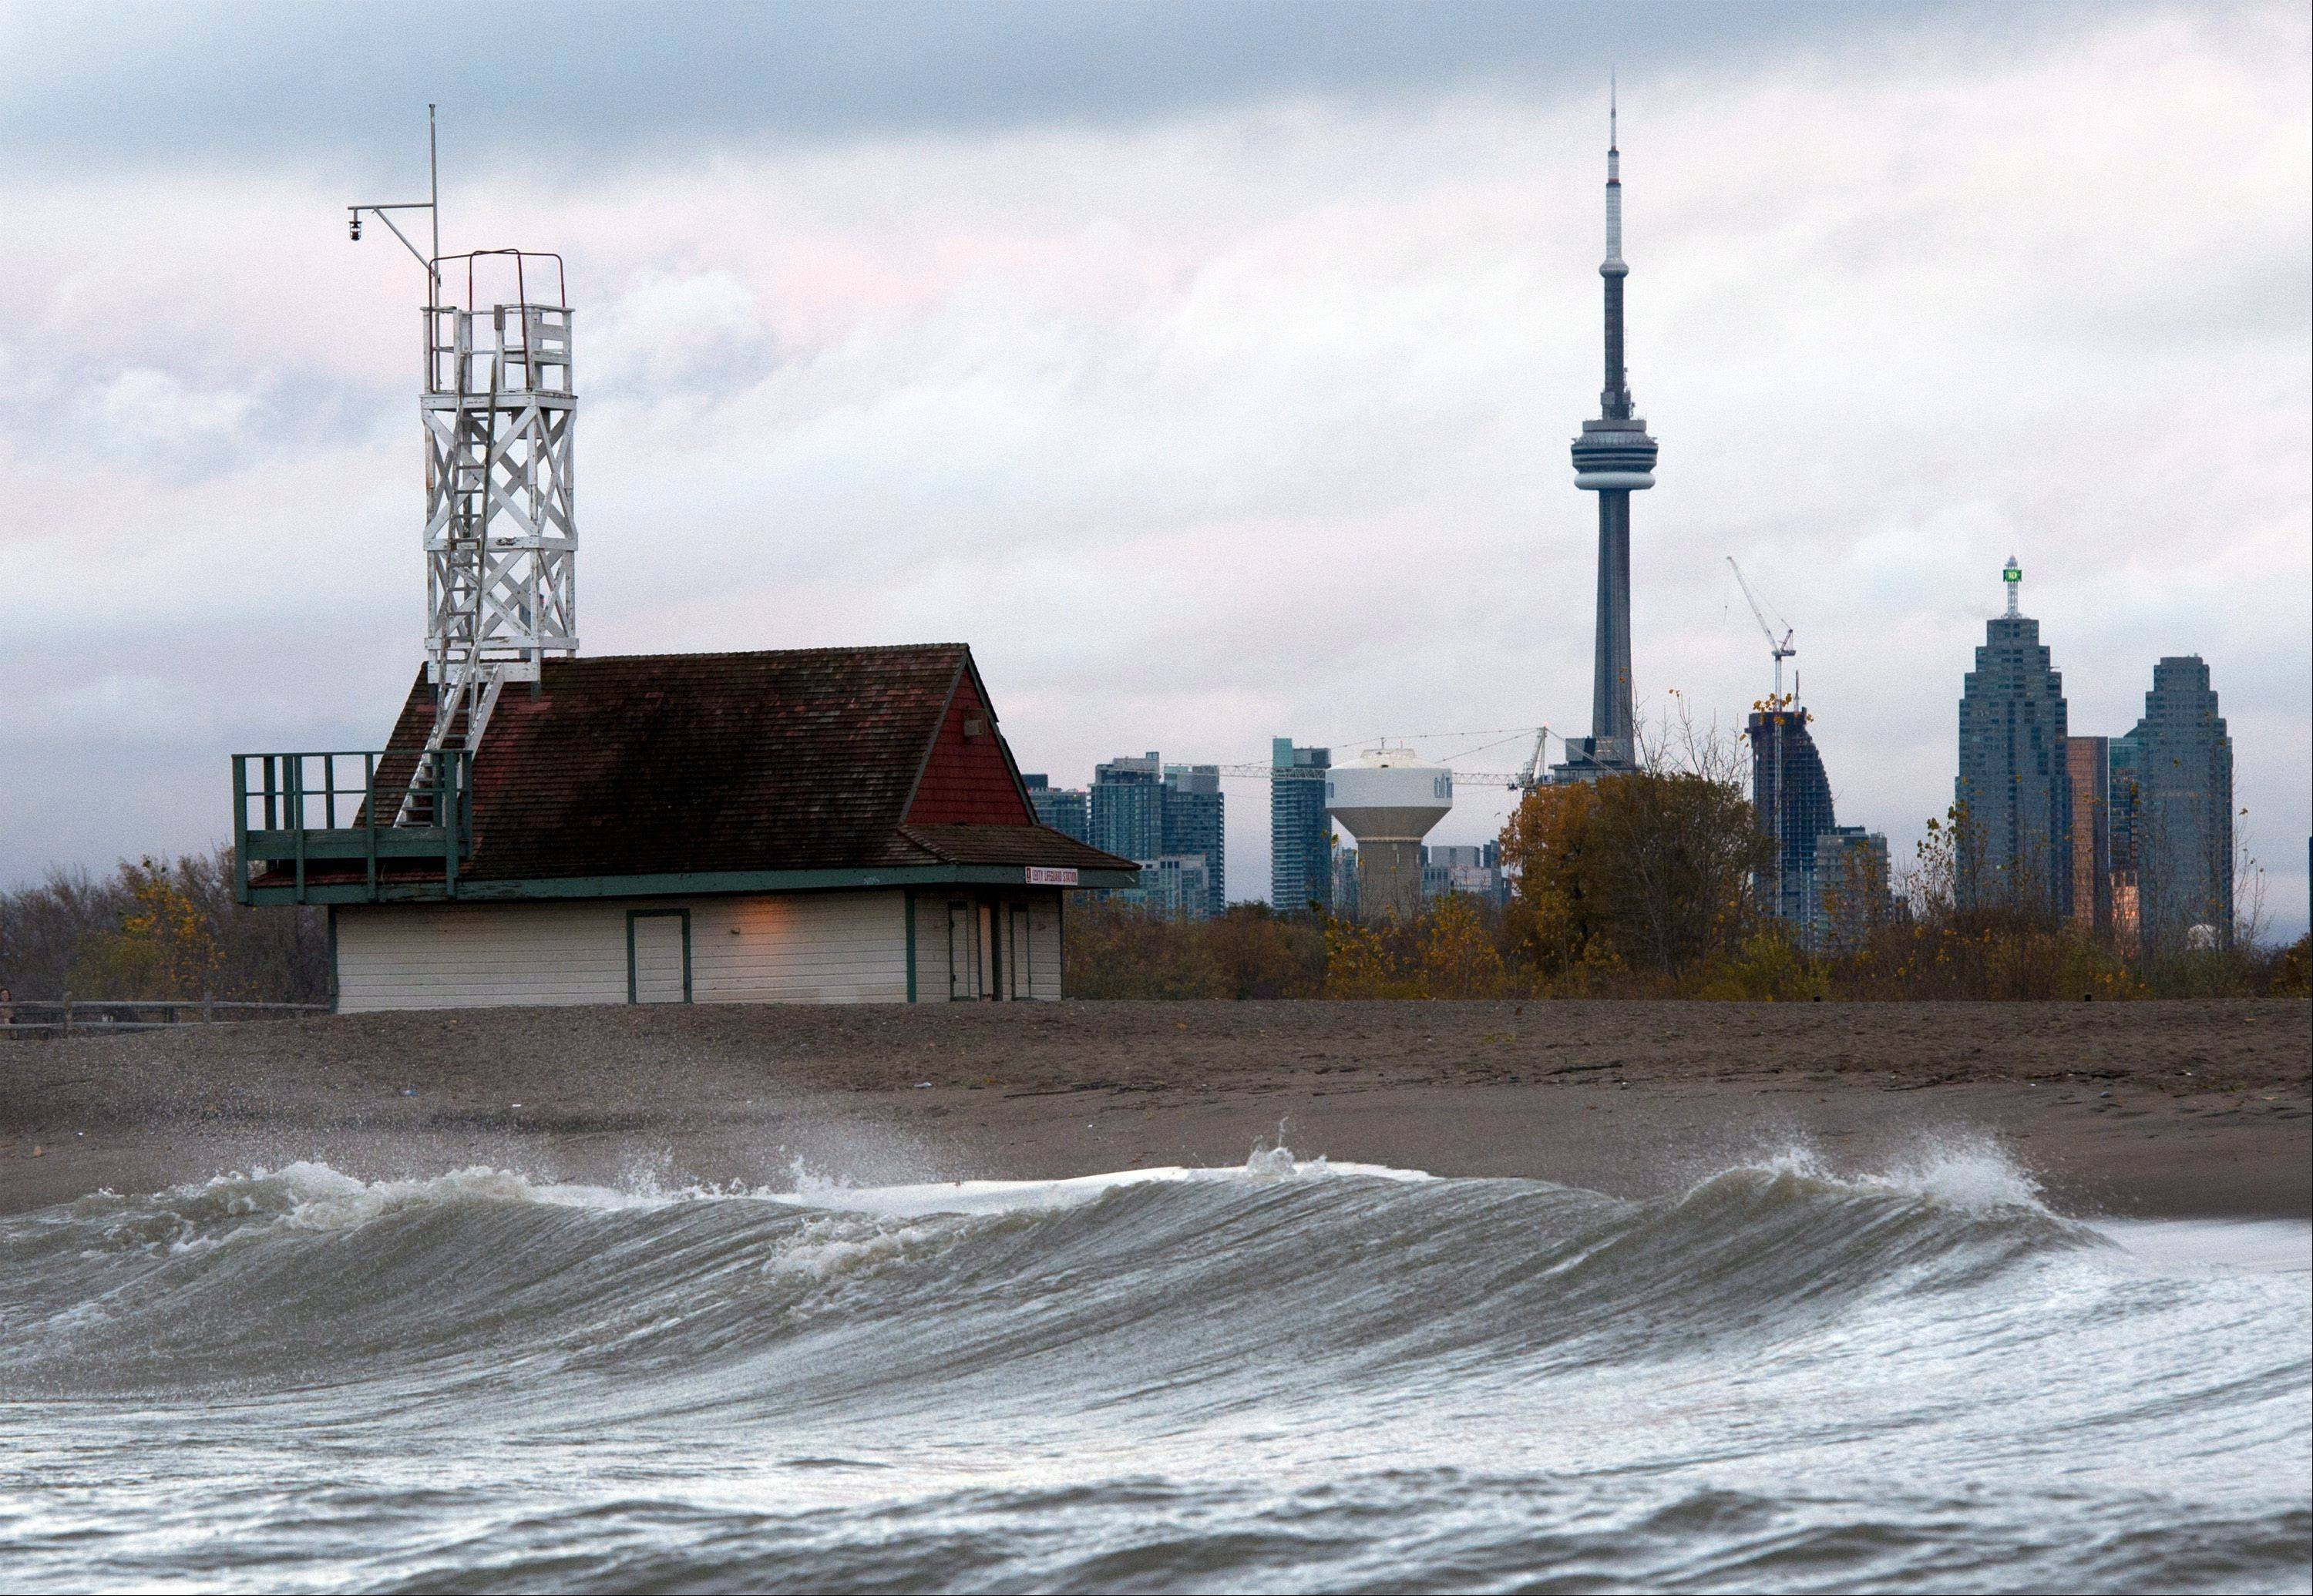 Waves driven by superstorm Sandy crash on the beach of Lake Ontario in Toronto on Tuesday morning, Oct. 30, 2012.